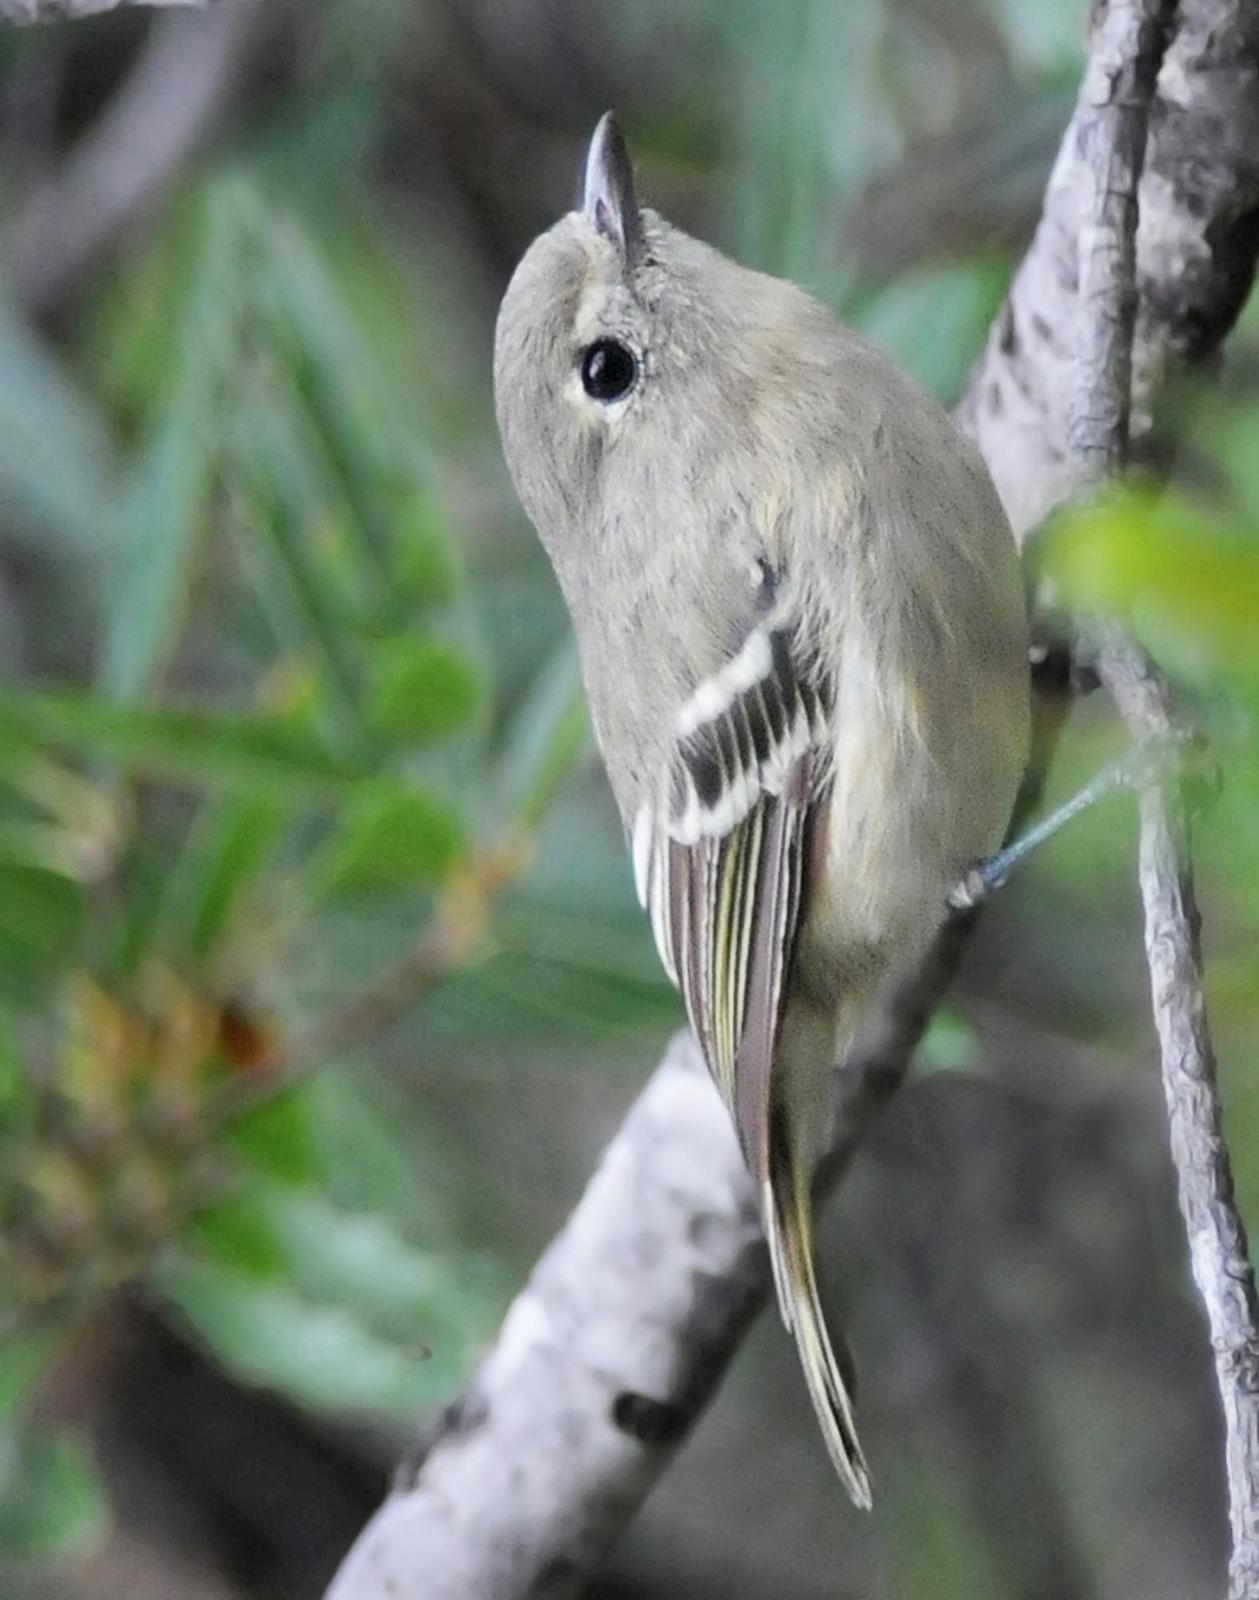 Hutton's Vireo Photo by Steven Mlodinow